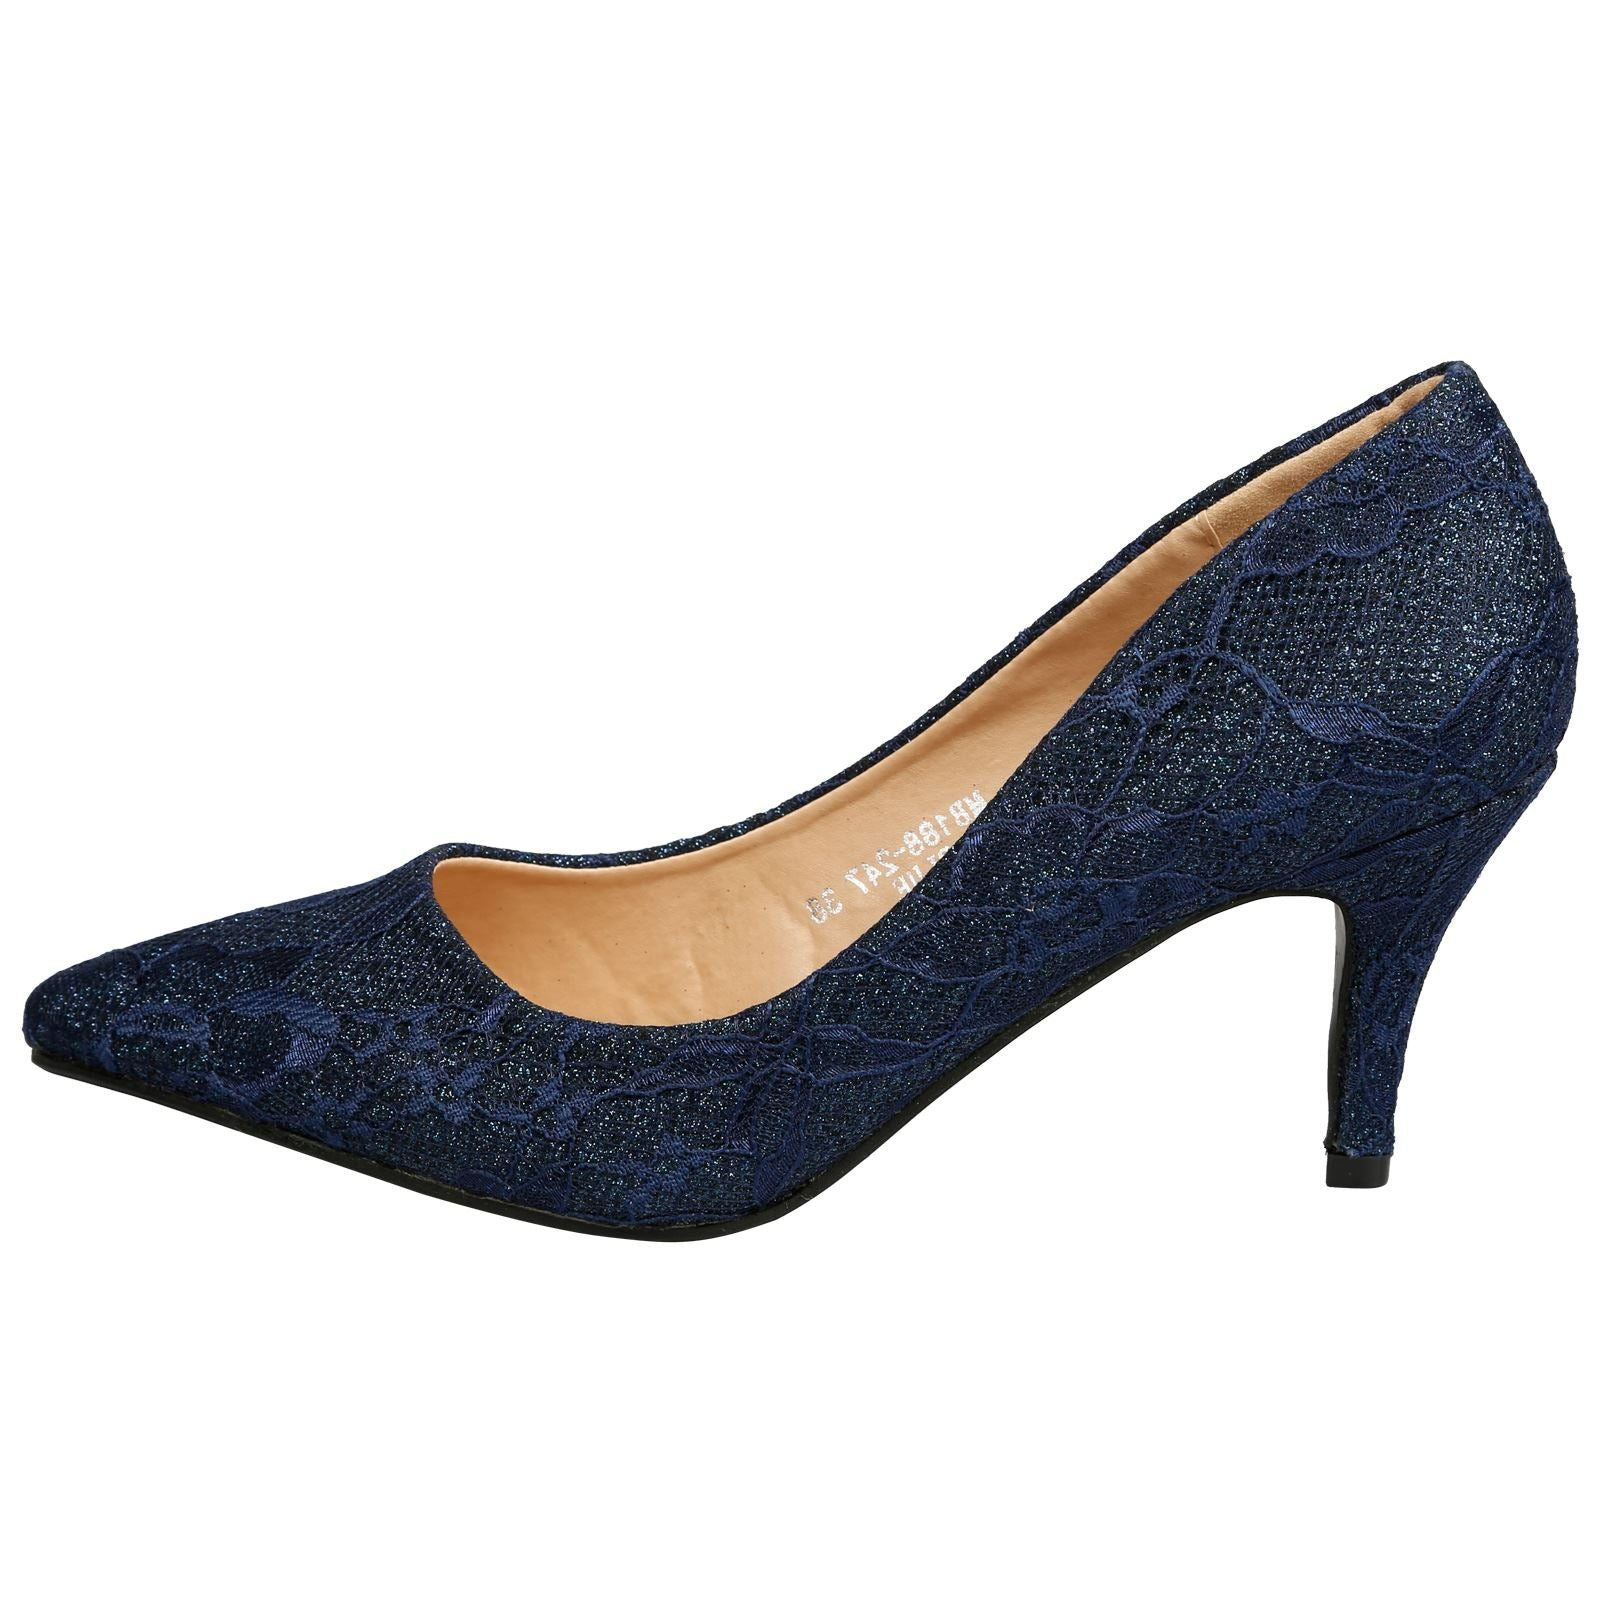 Katlyn Kitten Heel Court Shoes in Navy Lace